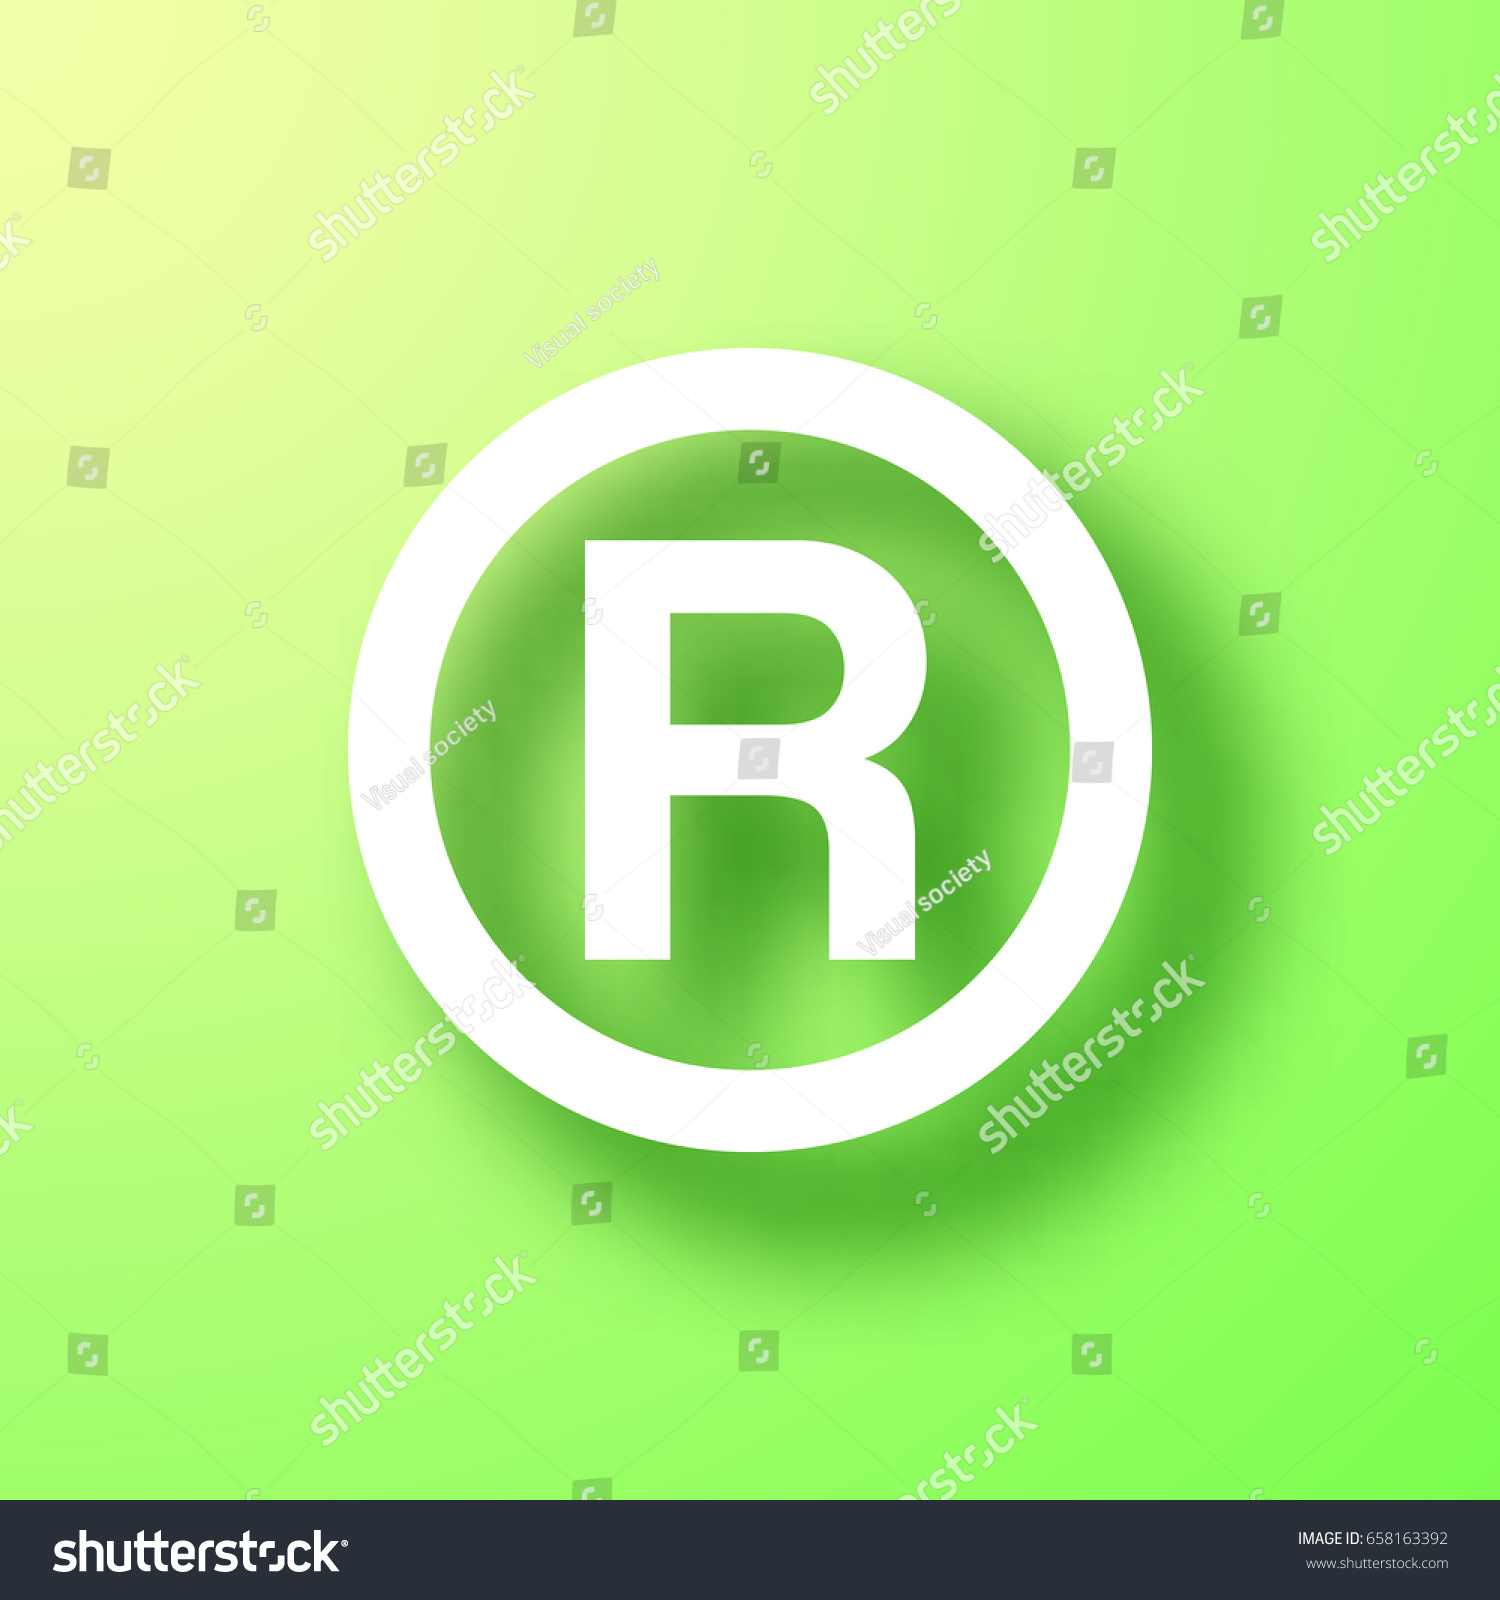 R registered trademark symbol isolated on stock vector 658163392 r registered trademark symbol isolated on bright green background with shadow vector illustration biocorpaavc Gallery